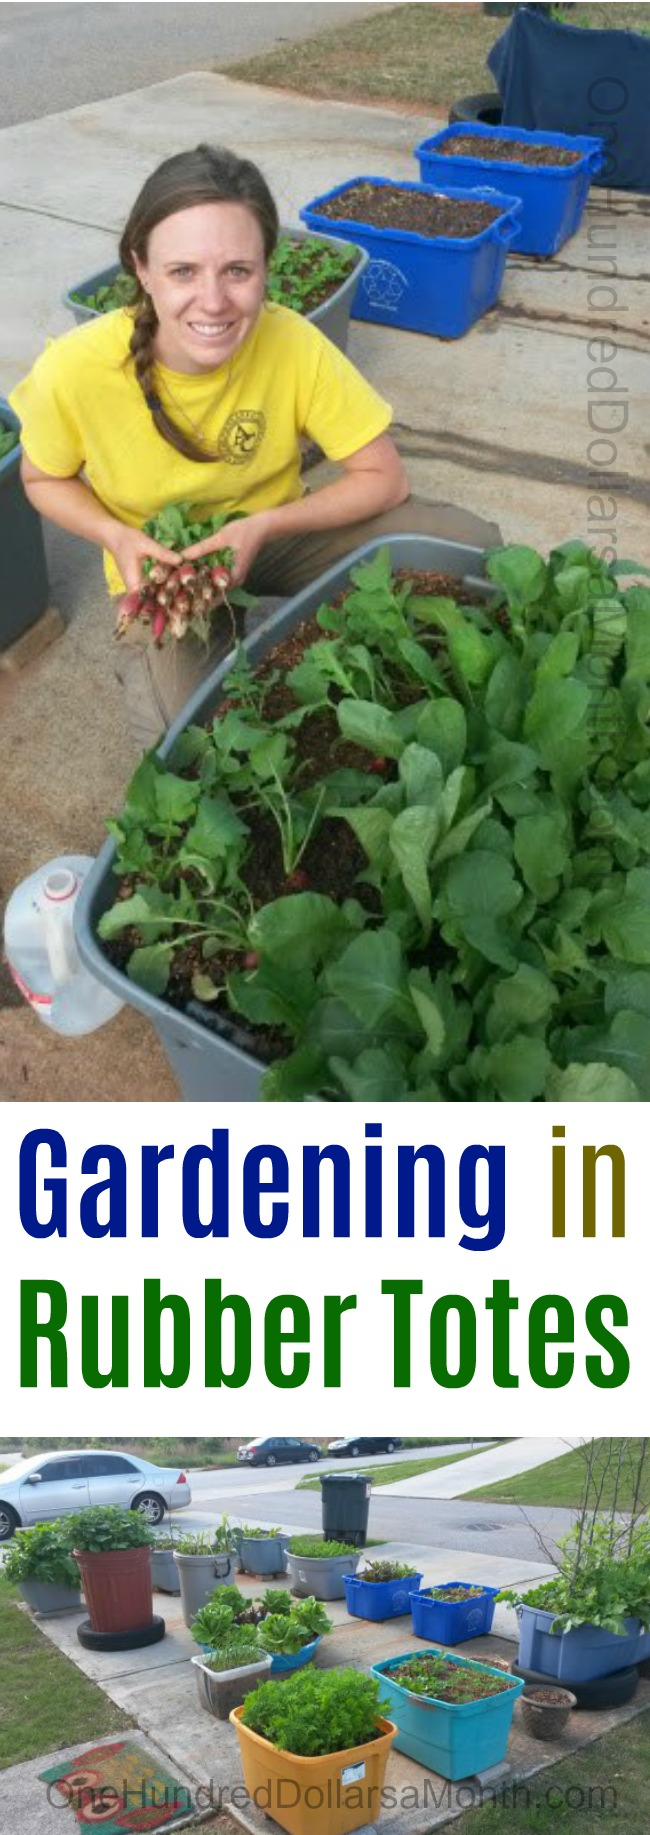 Christine From North Georgia Sends in Pictures of Her Container Garden